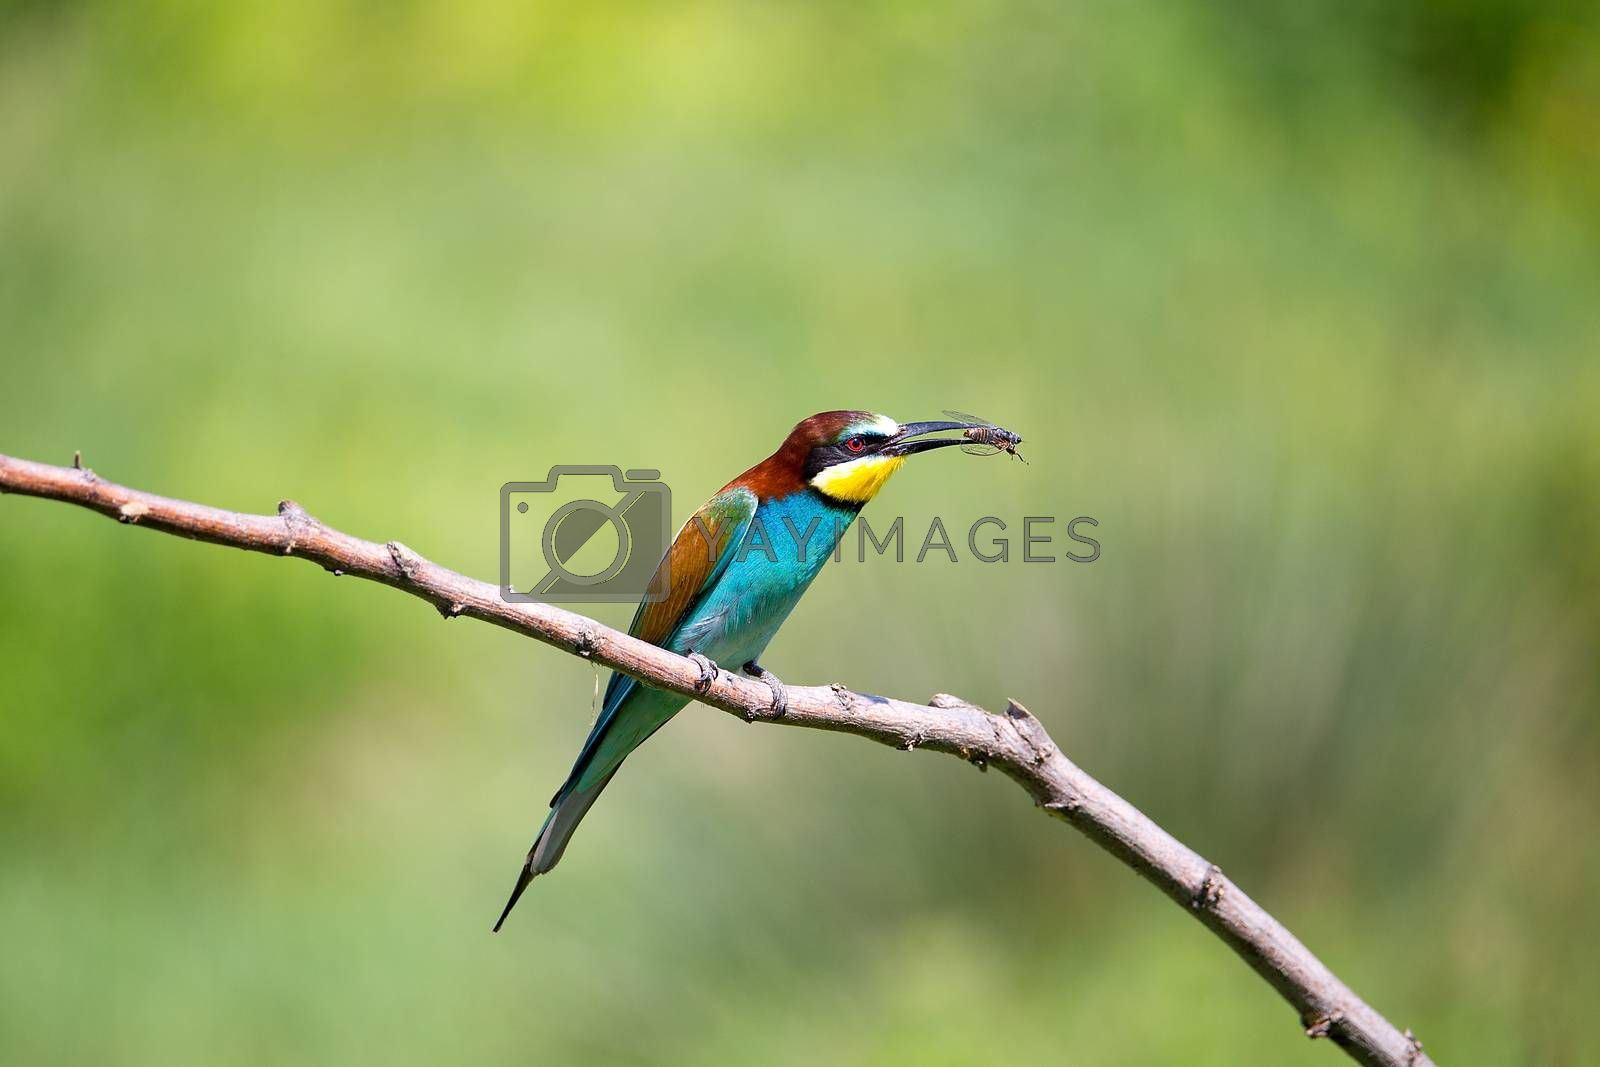 European Bee-eater playing with insect (Merops apiaster) on brunch - tropical colours bird, Isola della Cona, Monfalcone, Italy, Europe